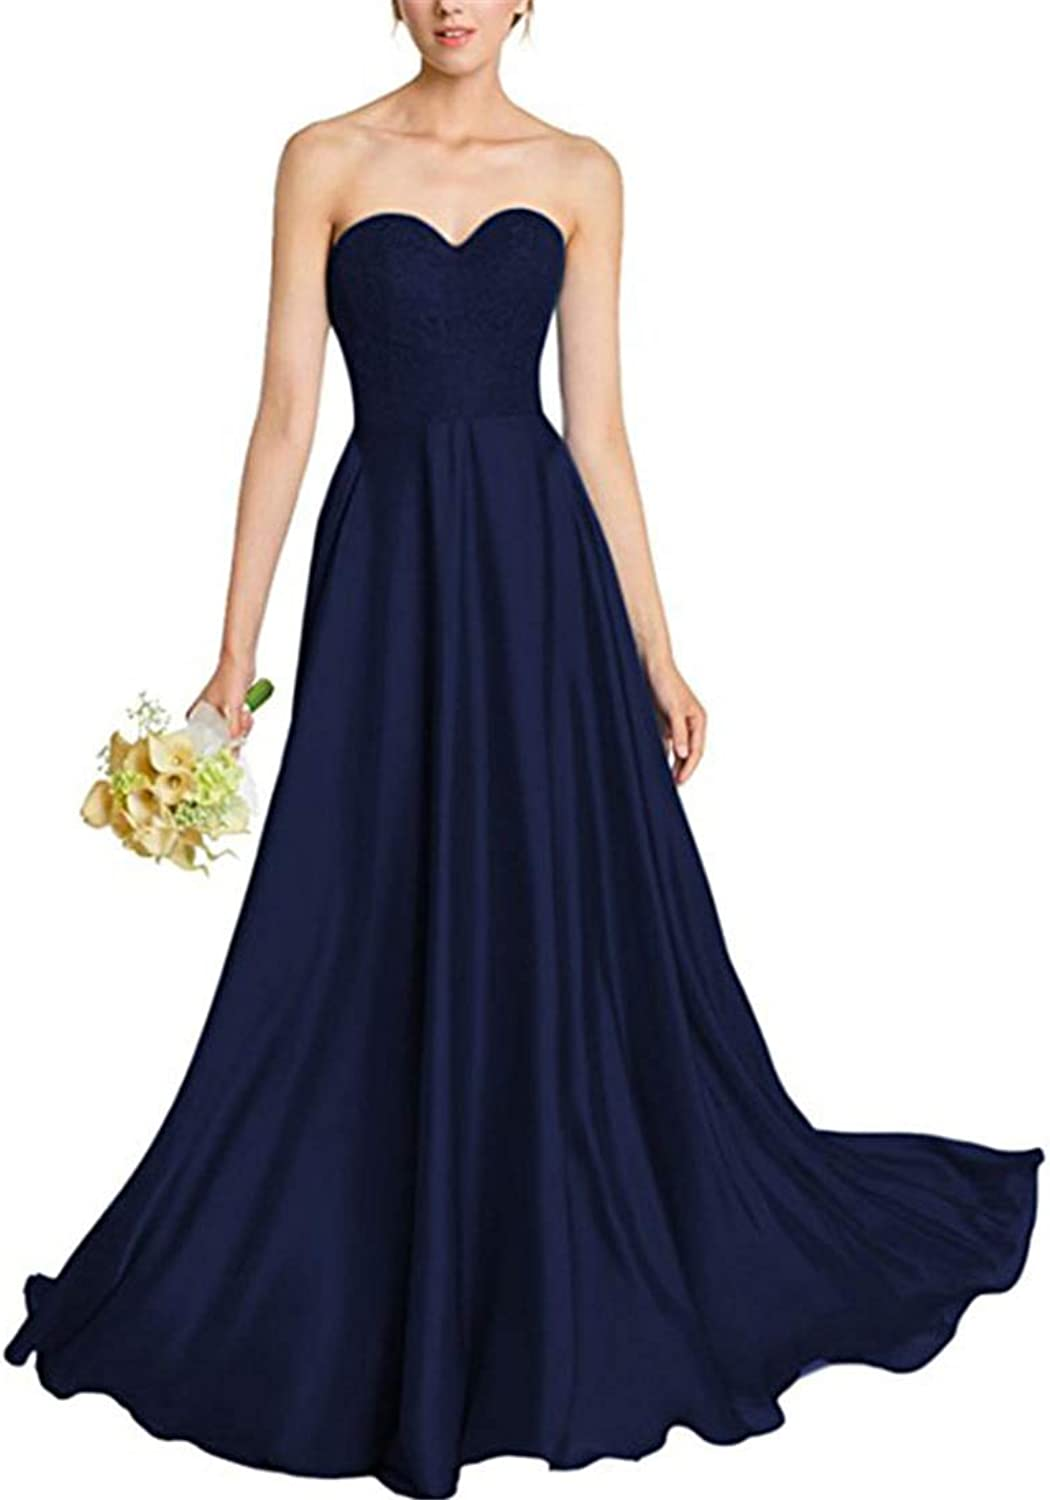 Bridesmaid Dresses with Lace A line Sweetheart Sleeveless Evening Party Gowns Satin Long Prom Dress for Women